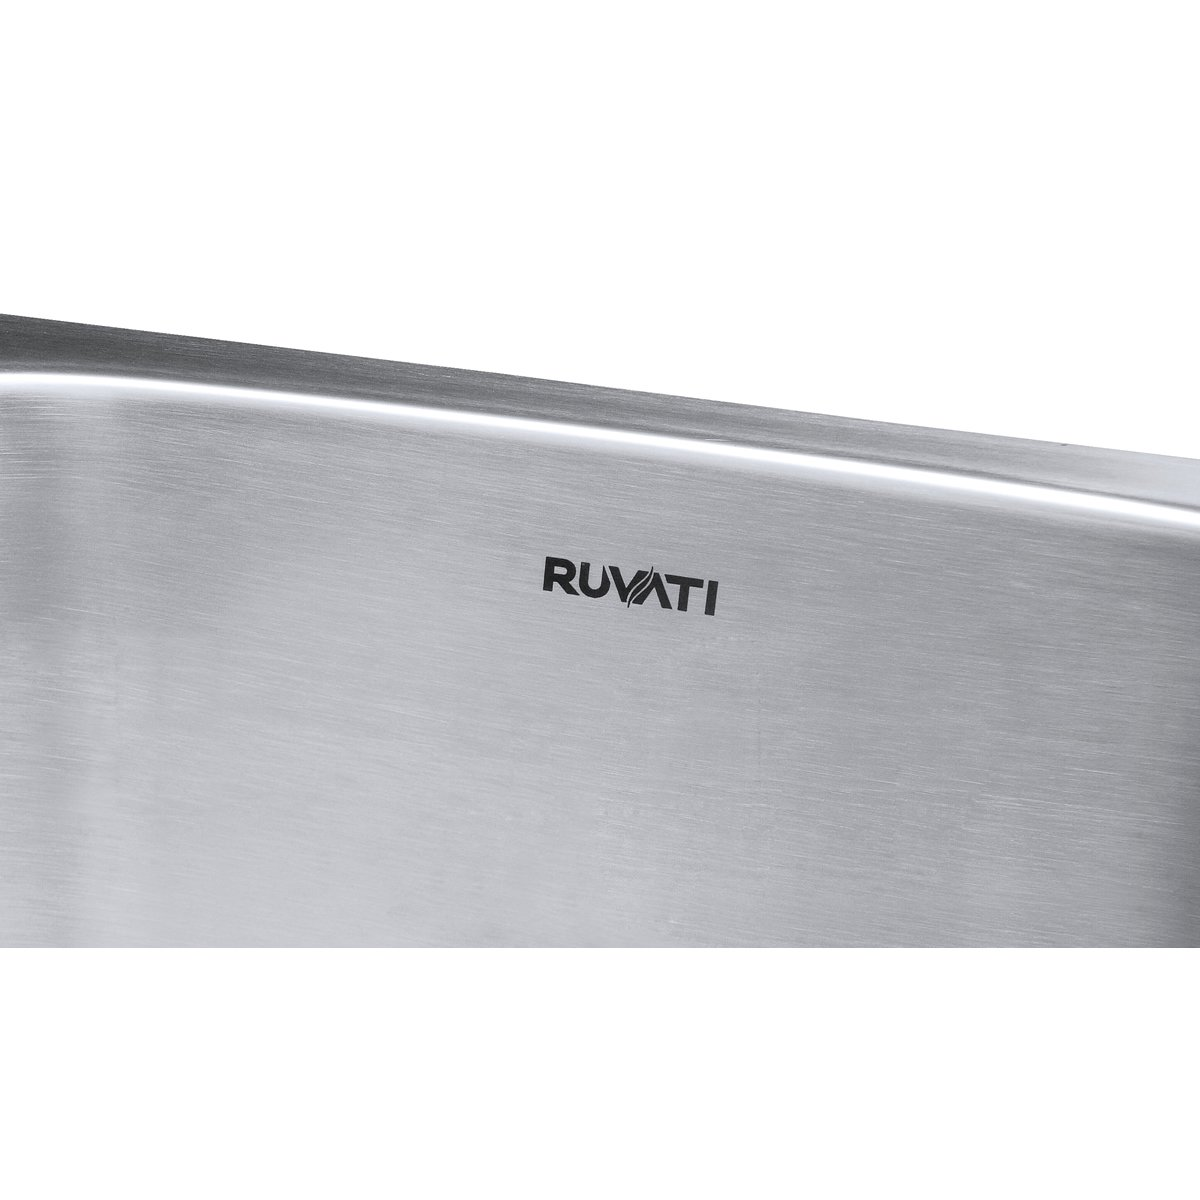 Ruvati 32-inch Undermount 50/50 Double Bowl 16 Gauge Stainless Steel Kitchen Sink - RVM4300 by Ruvati (Image #2)